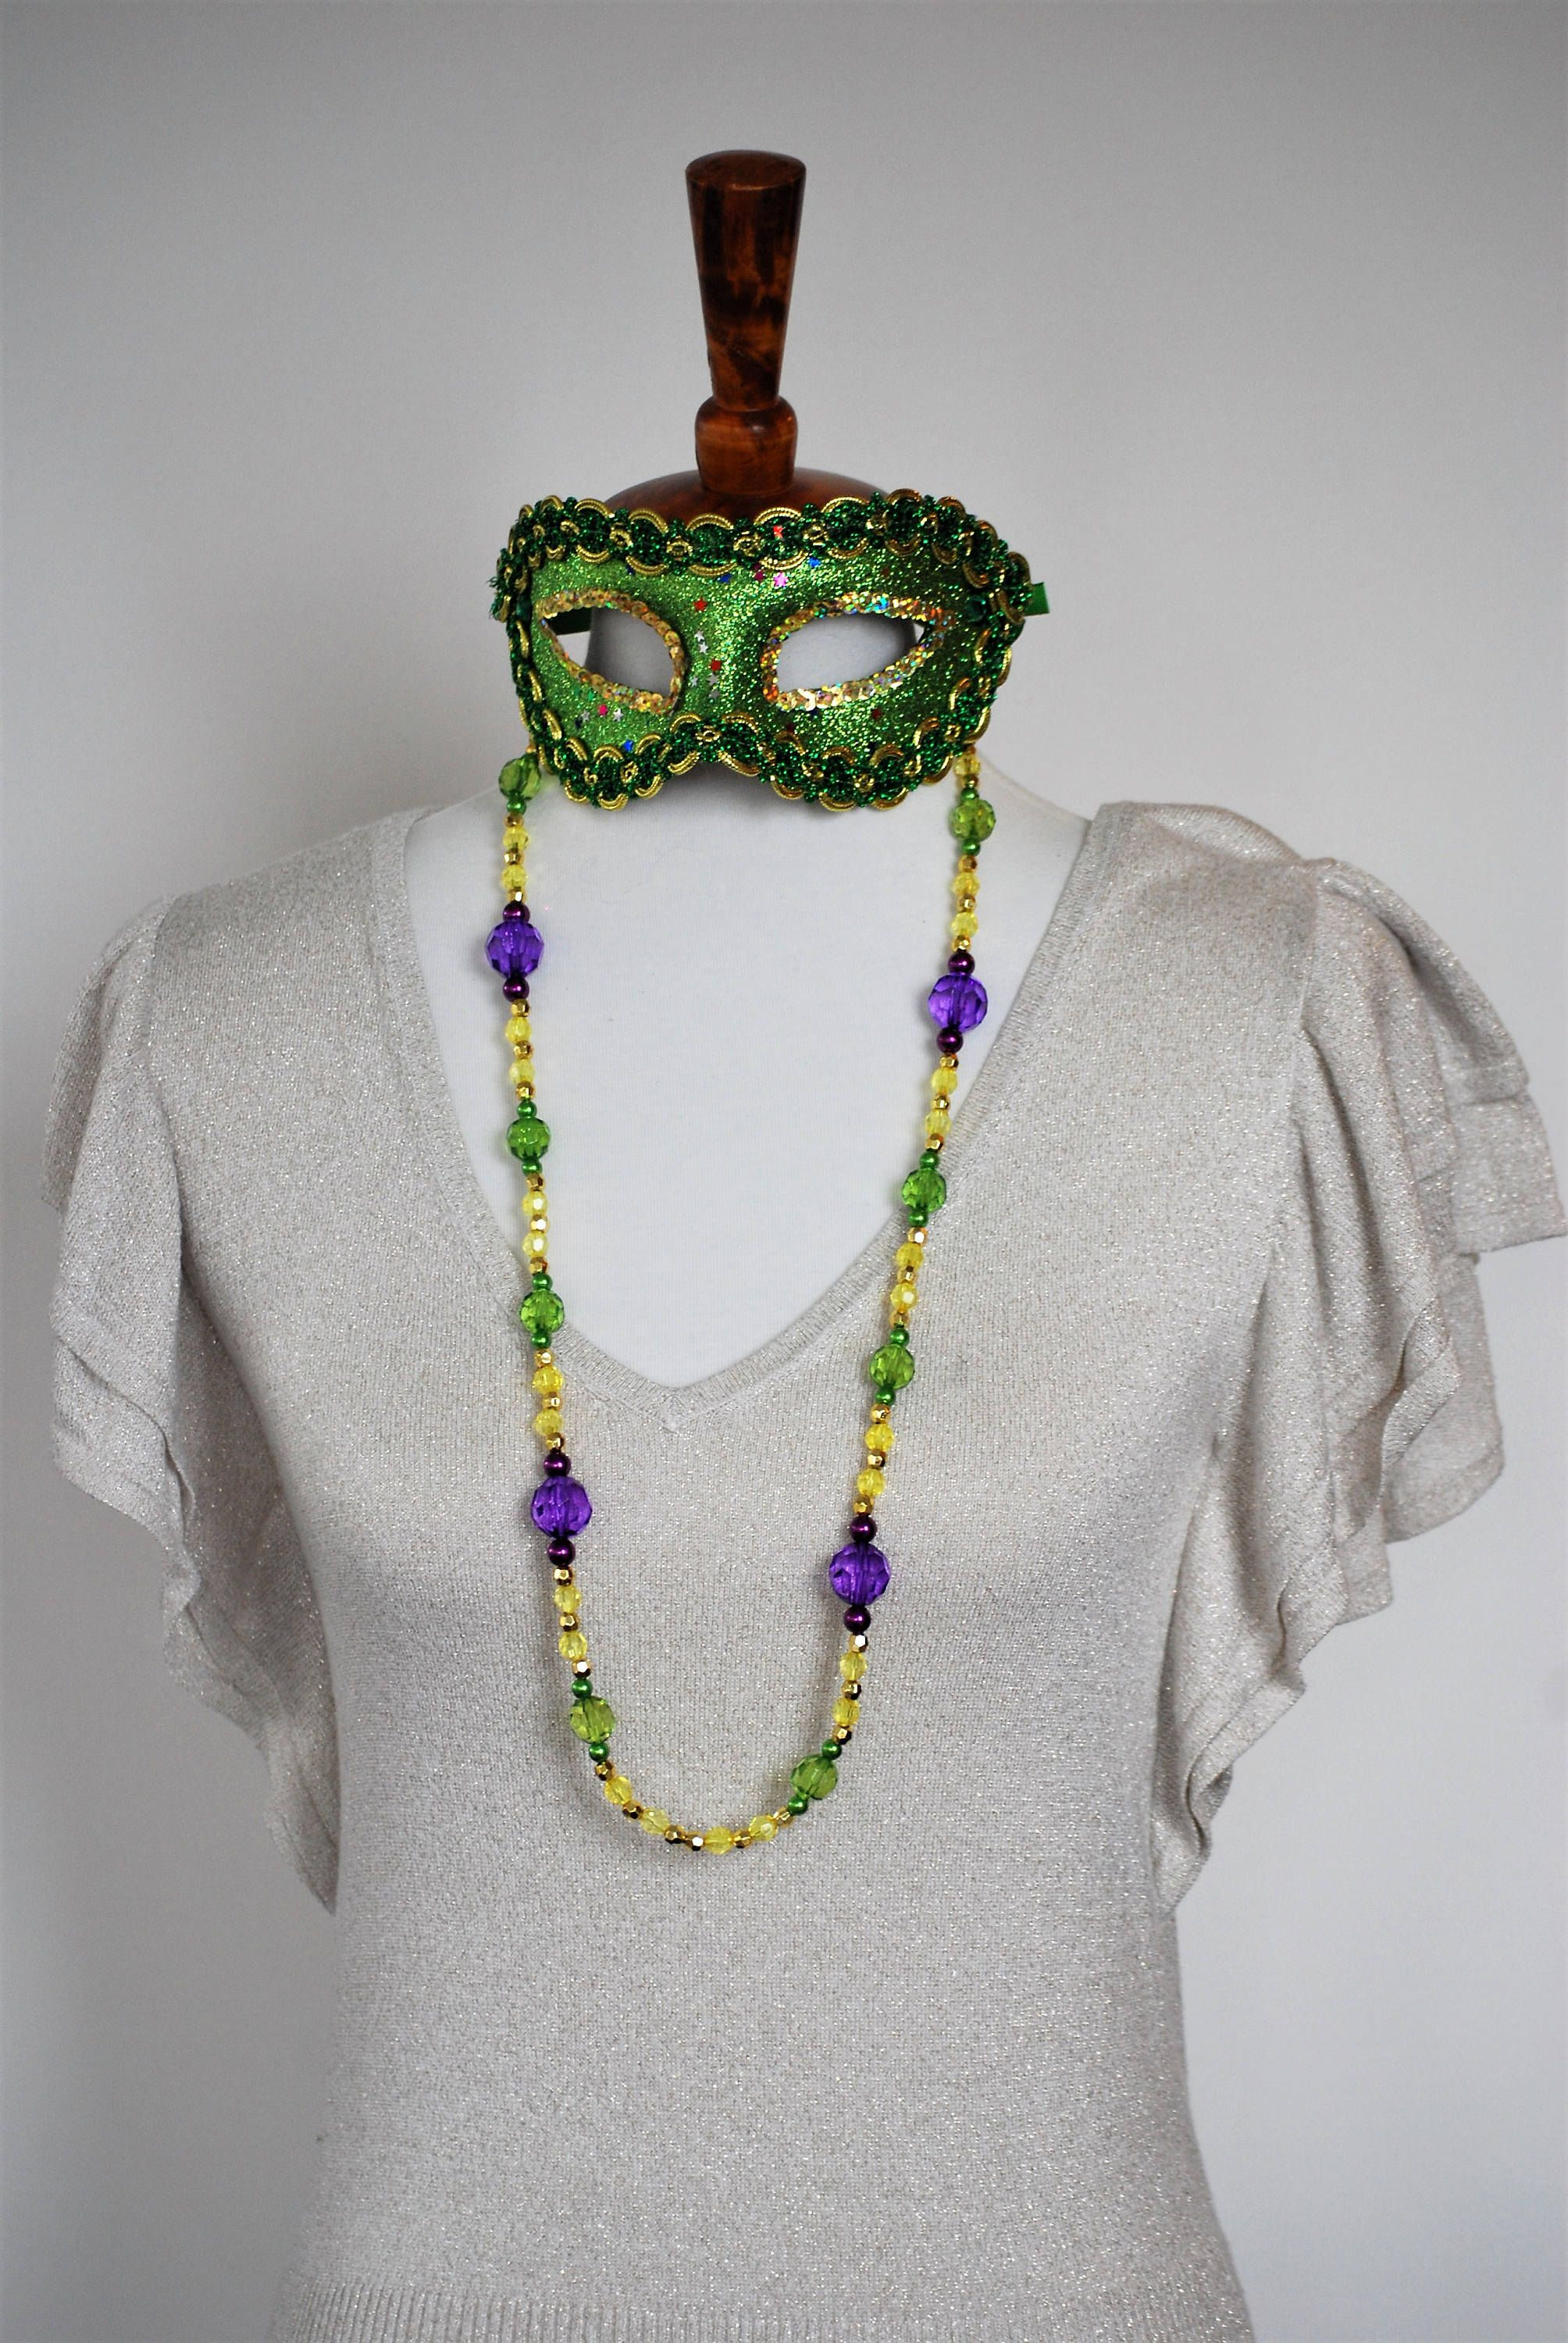 gras surplus orleans other mardi uses news carnival with new beads for to what do